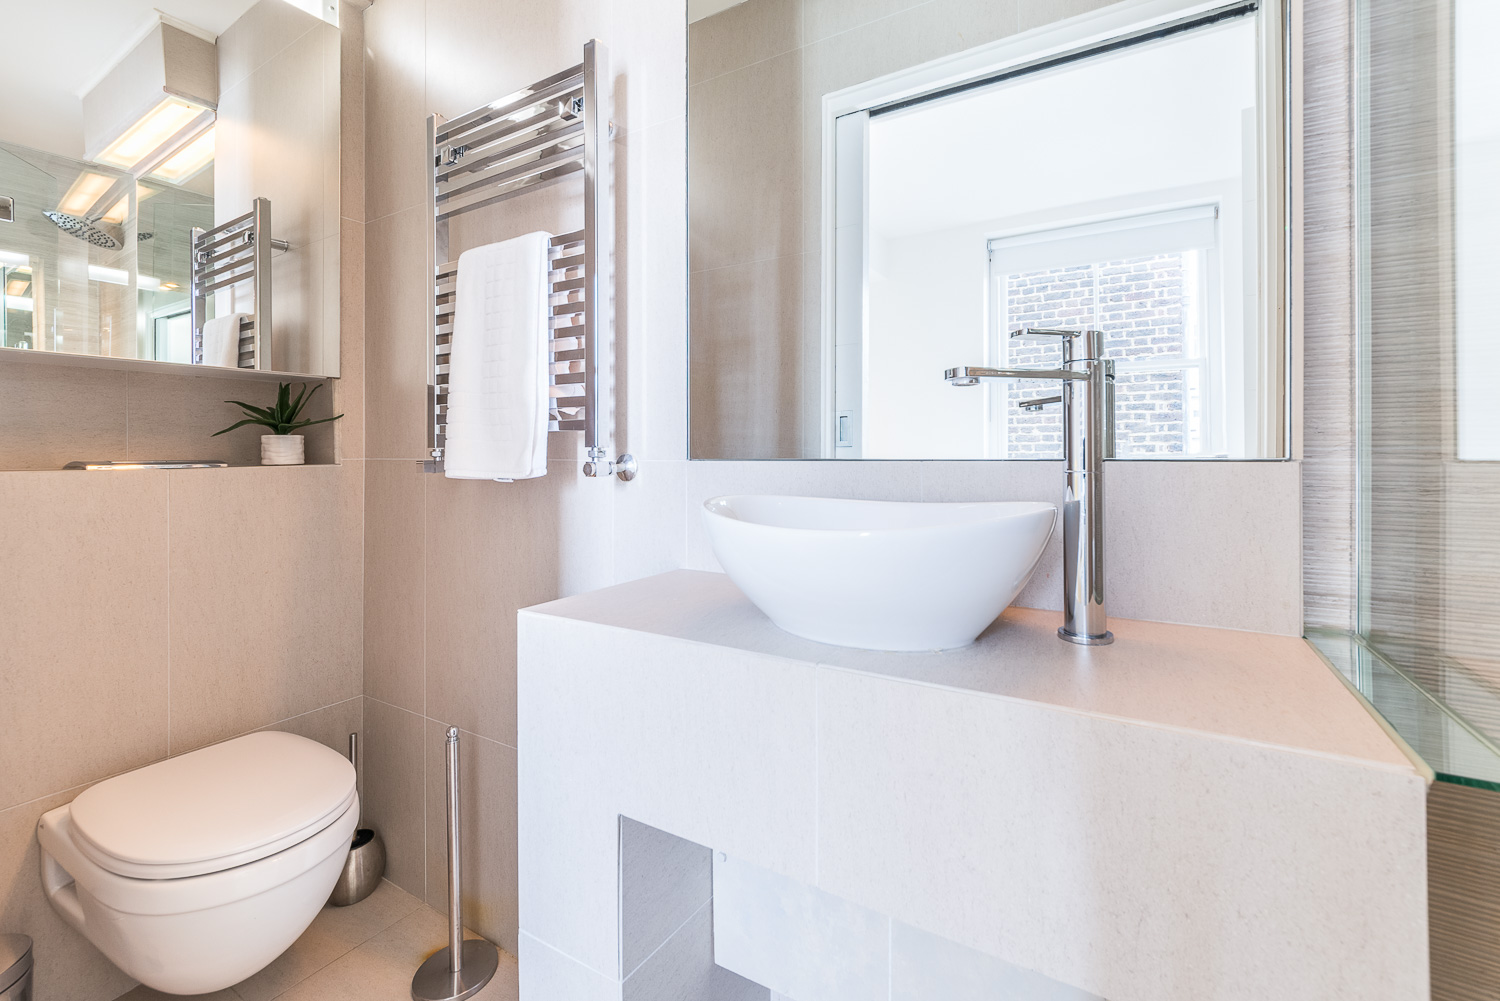 Lovelydays luxury service apartment rental - London - Fitzrovia - Foley Street II - Lovelysuite - 2 bedrooms - 2 bathrooms - Lovely shower - bc190107ef0a - Lovelydays